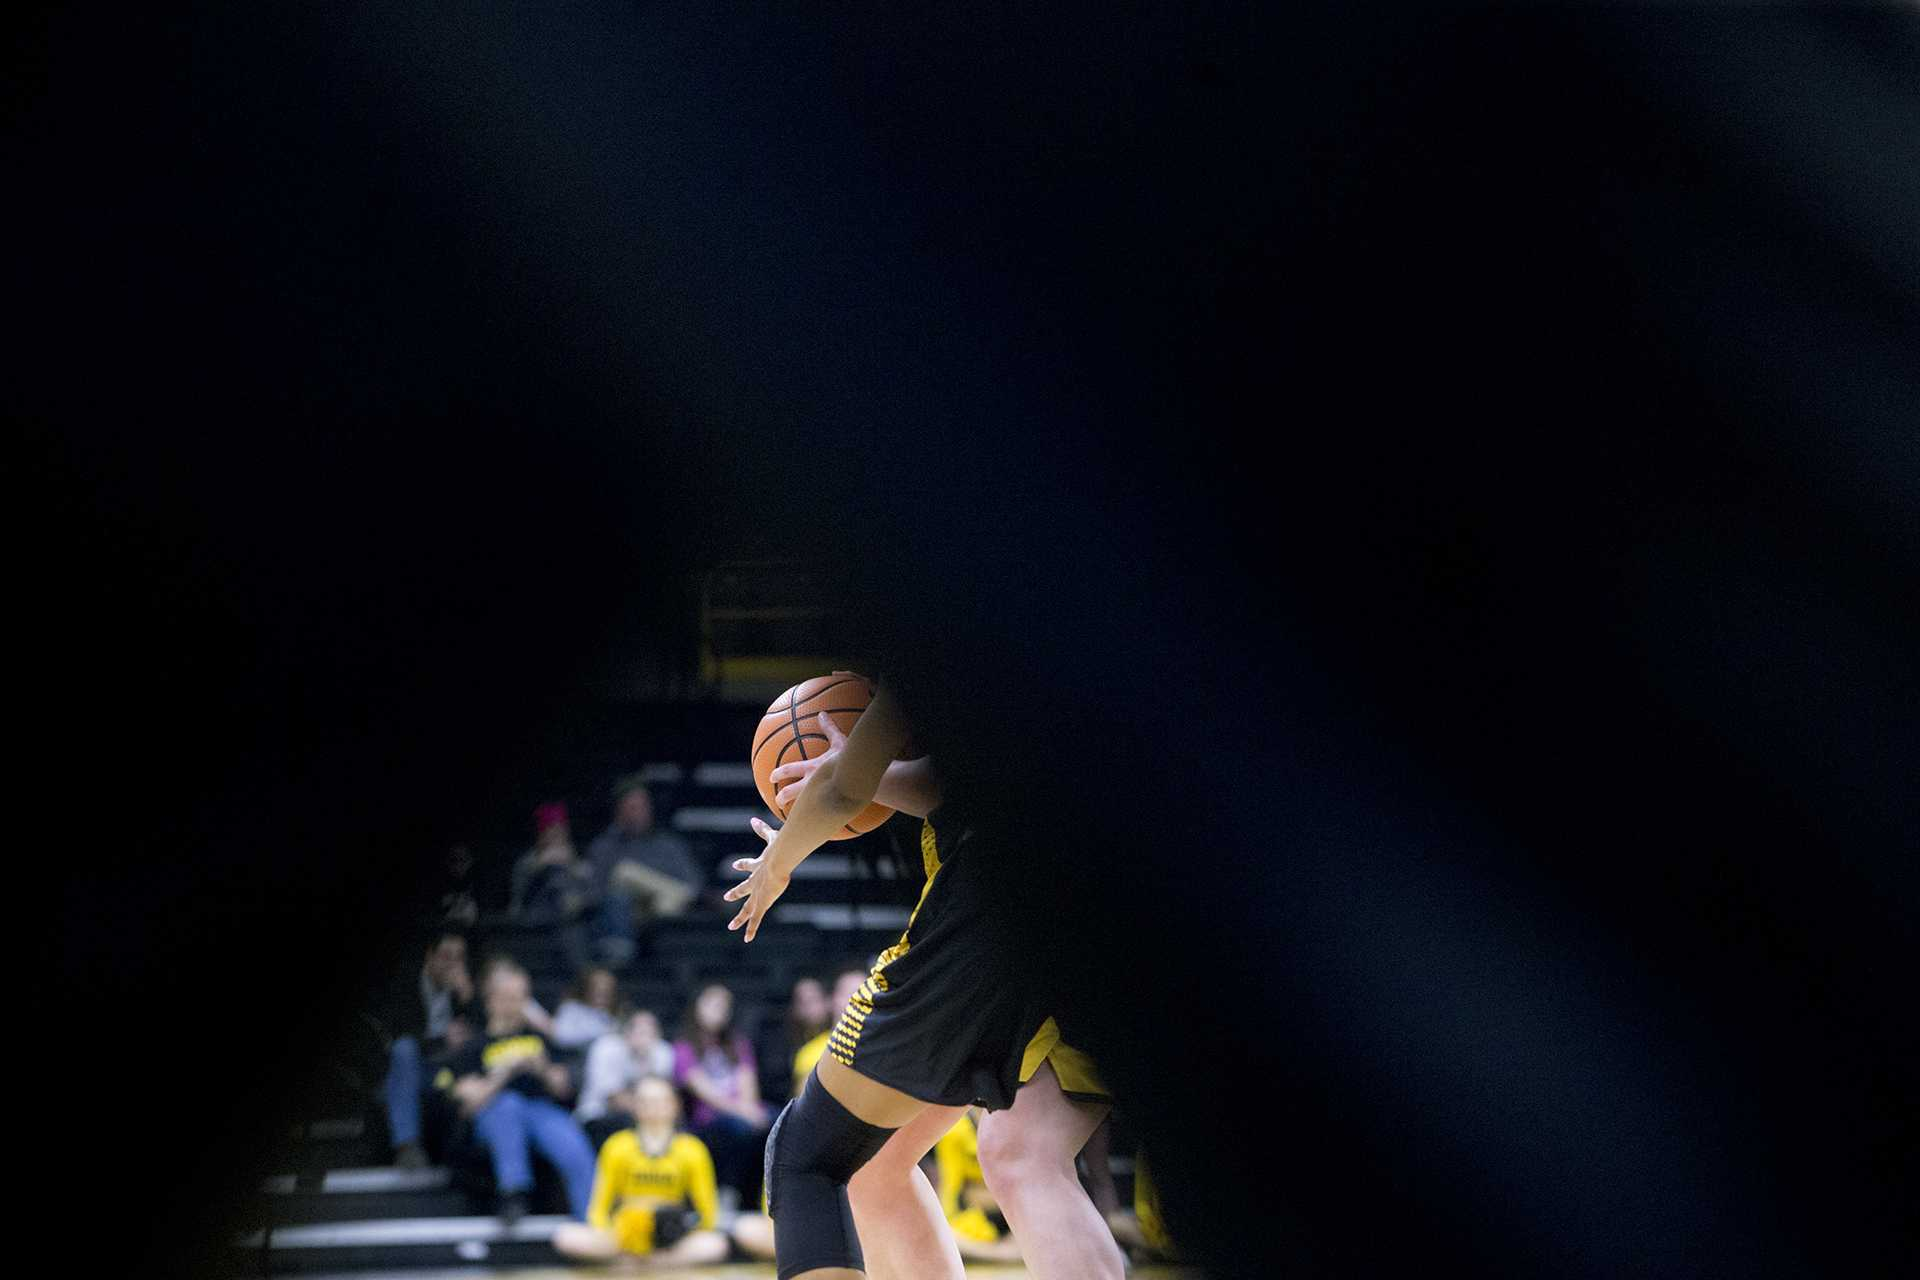 An Iowa player guards the ball during the Iowa/Arkansas-Pine Bluff basketball game in Carver-Hawkeye Arena on Saturday, Dec. 9, 2017. The Hawkeyes defeated the Golden Lions, 85-45. (Lily Smith/The Daily Iowan)